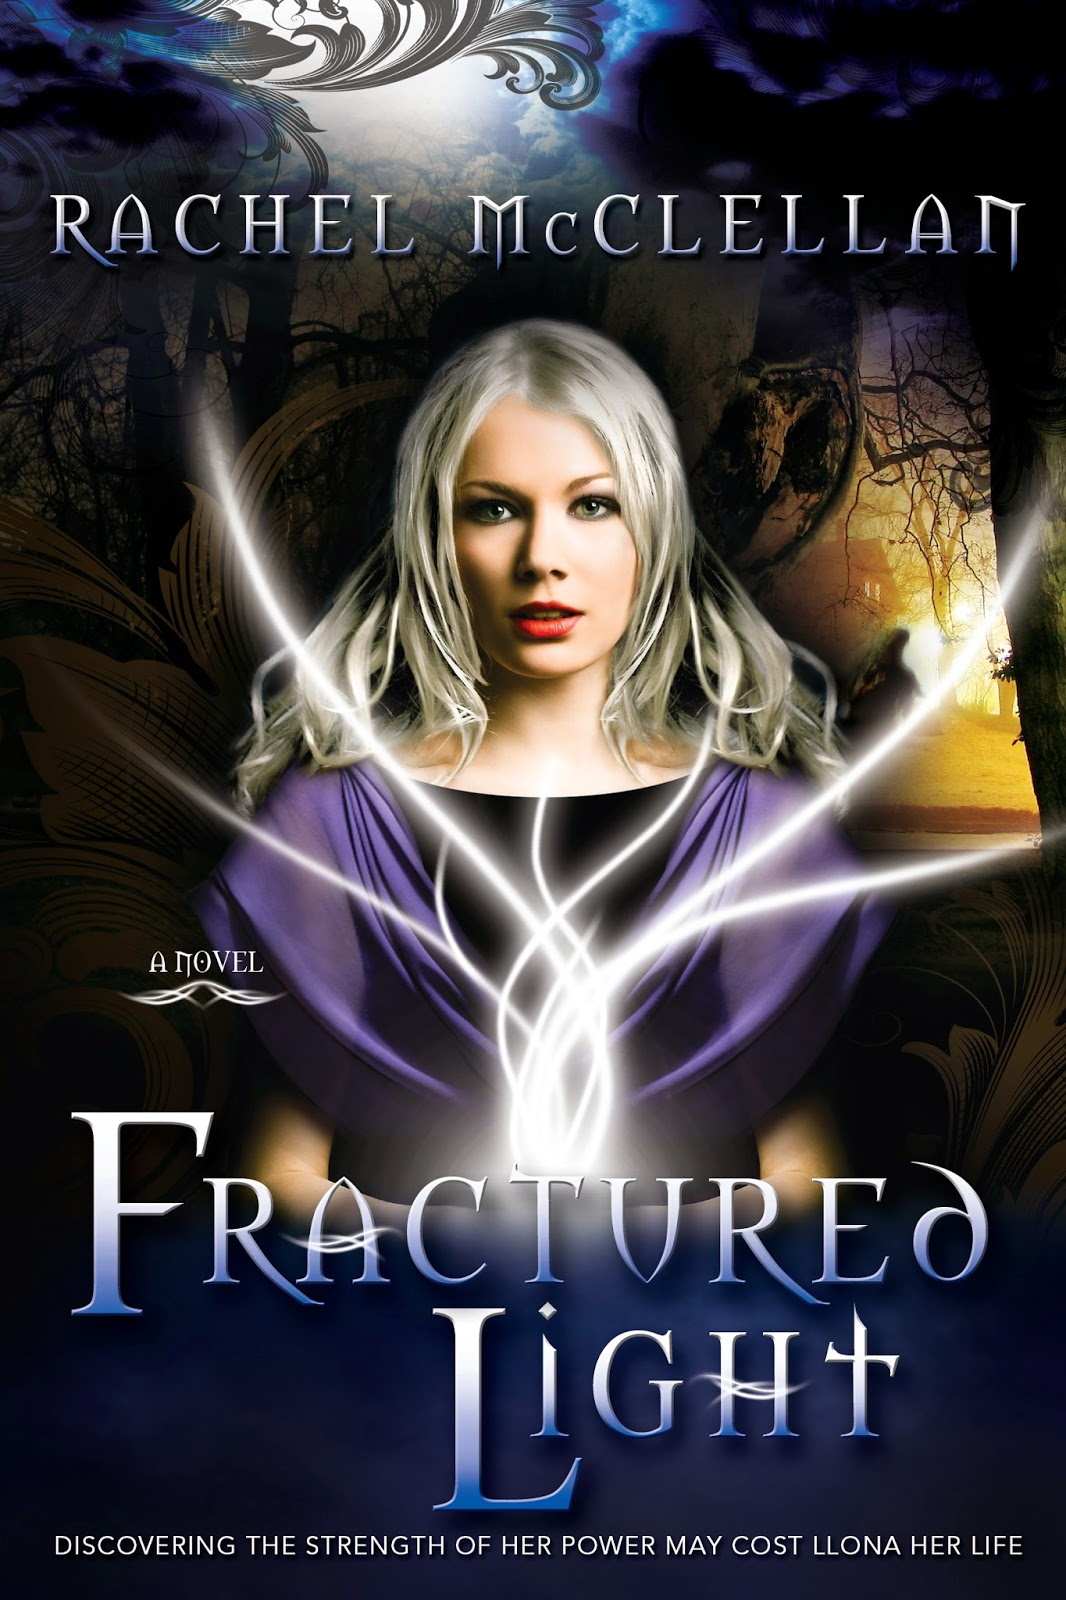 http://www.amazon.com/Fractured-Light-Rachel-McClellan/dp/1599559420/ref=la_B005RFFM9M_1_2?s=books&ie=UTF8&qid=1396458040&sr=1-2